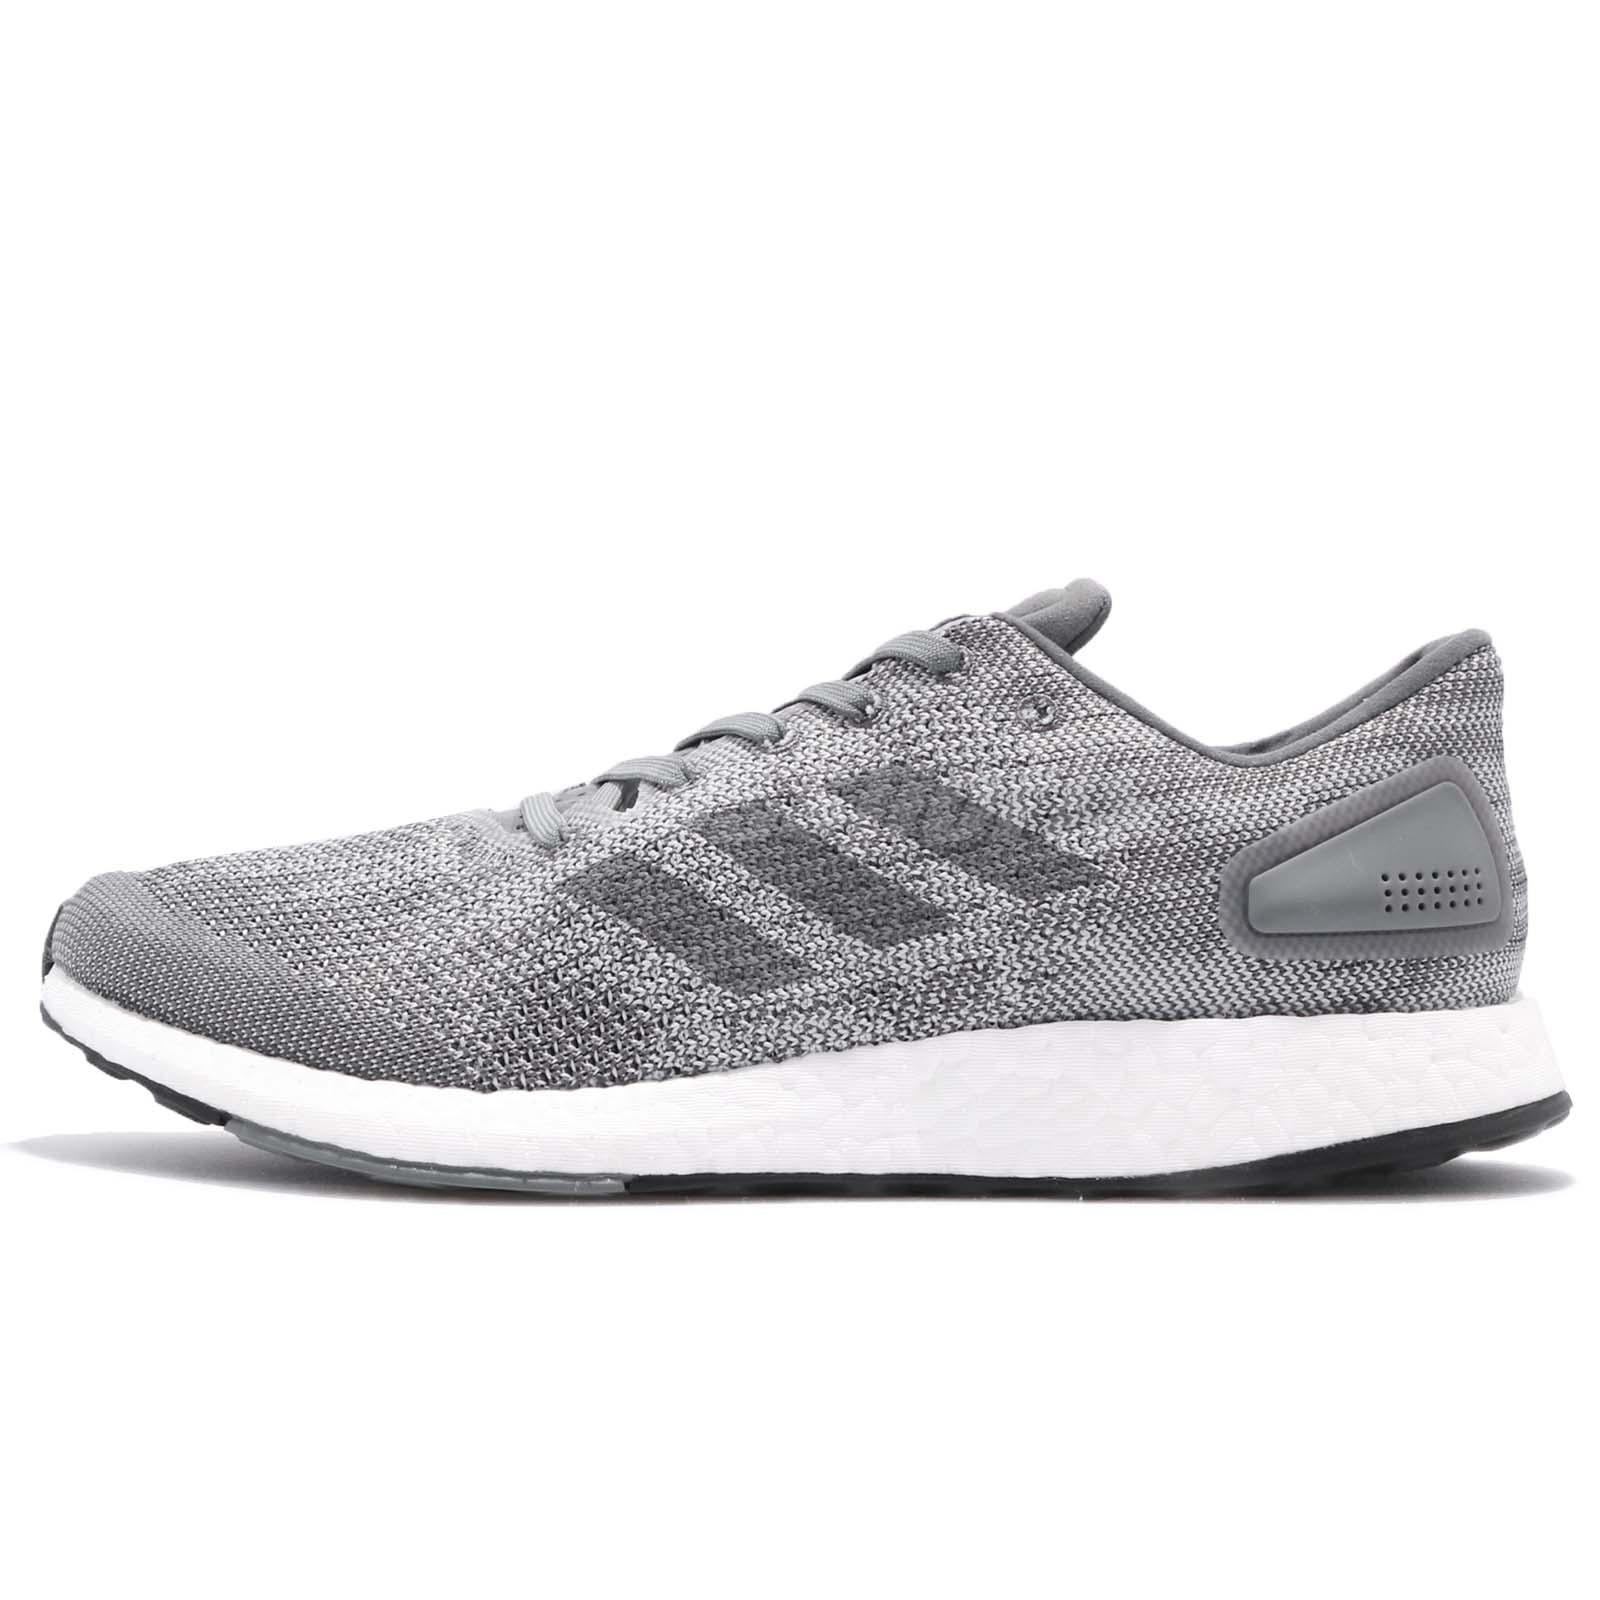 328d683c4ab9c adidas PureBOOST DPR Knit Grey White Men Running Shoes Sneakers Trainer  BB6290